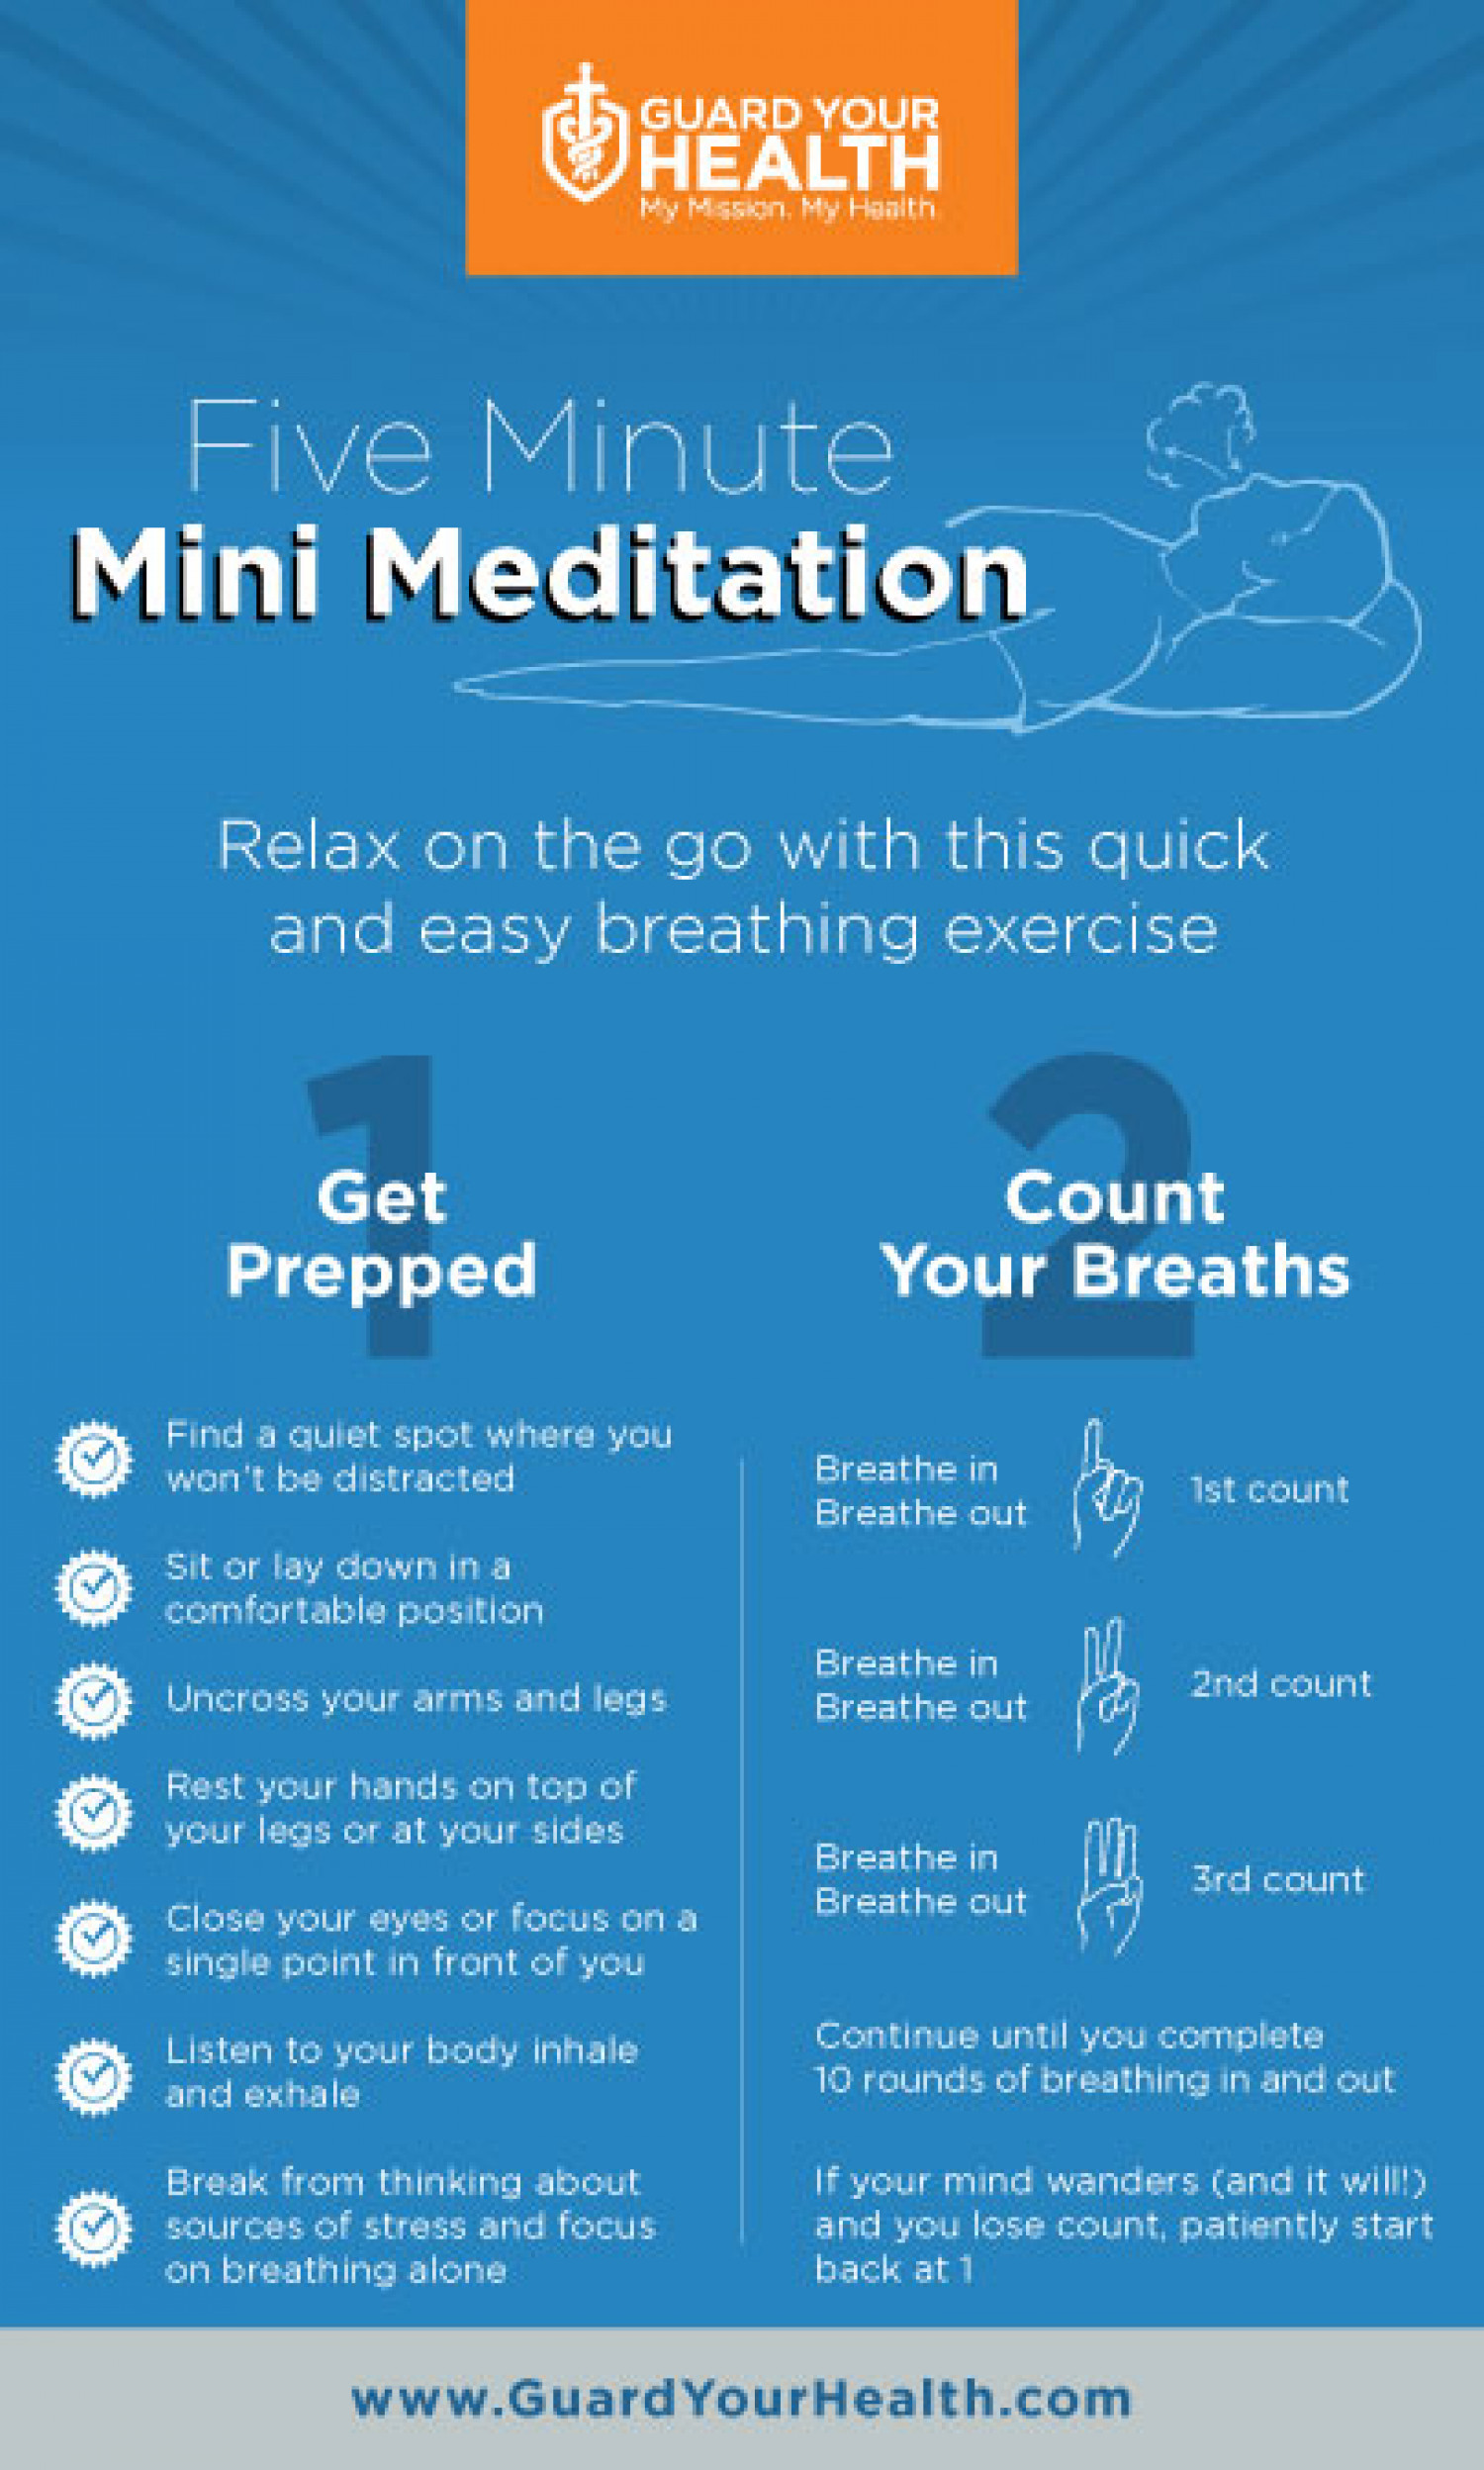 Five Minute Mini Meditation